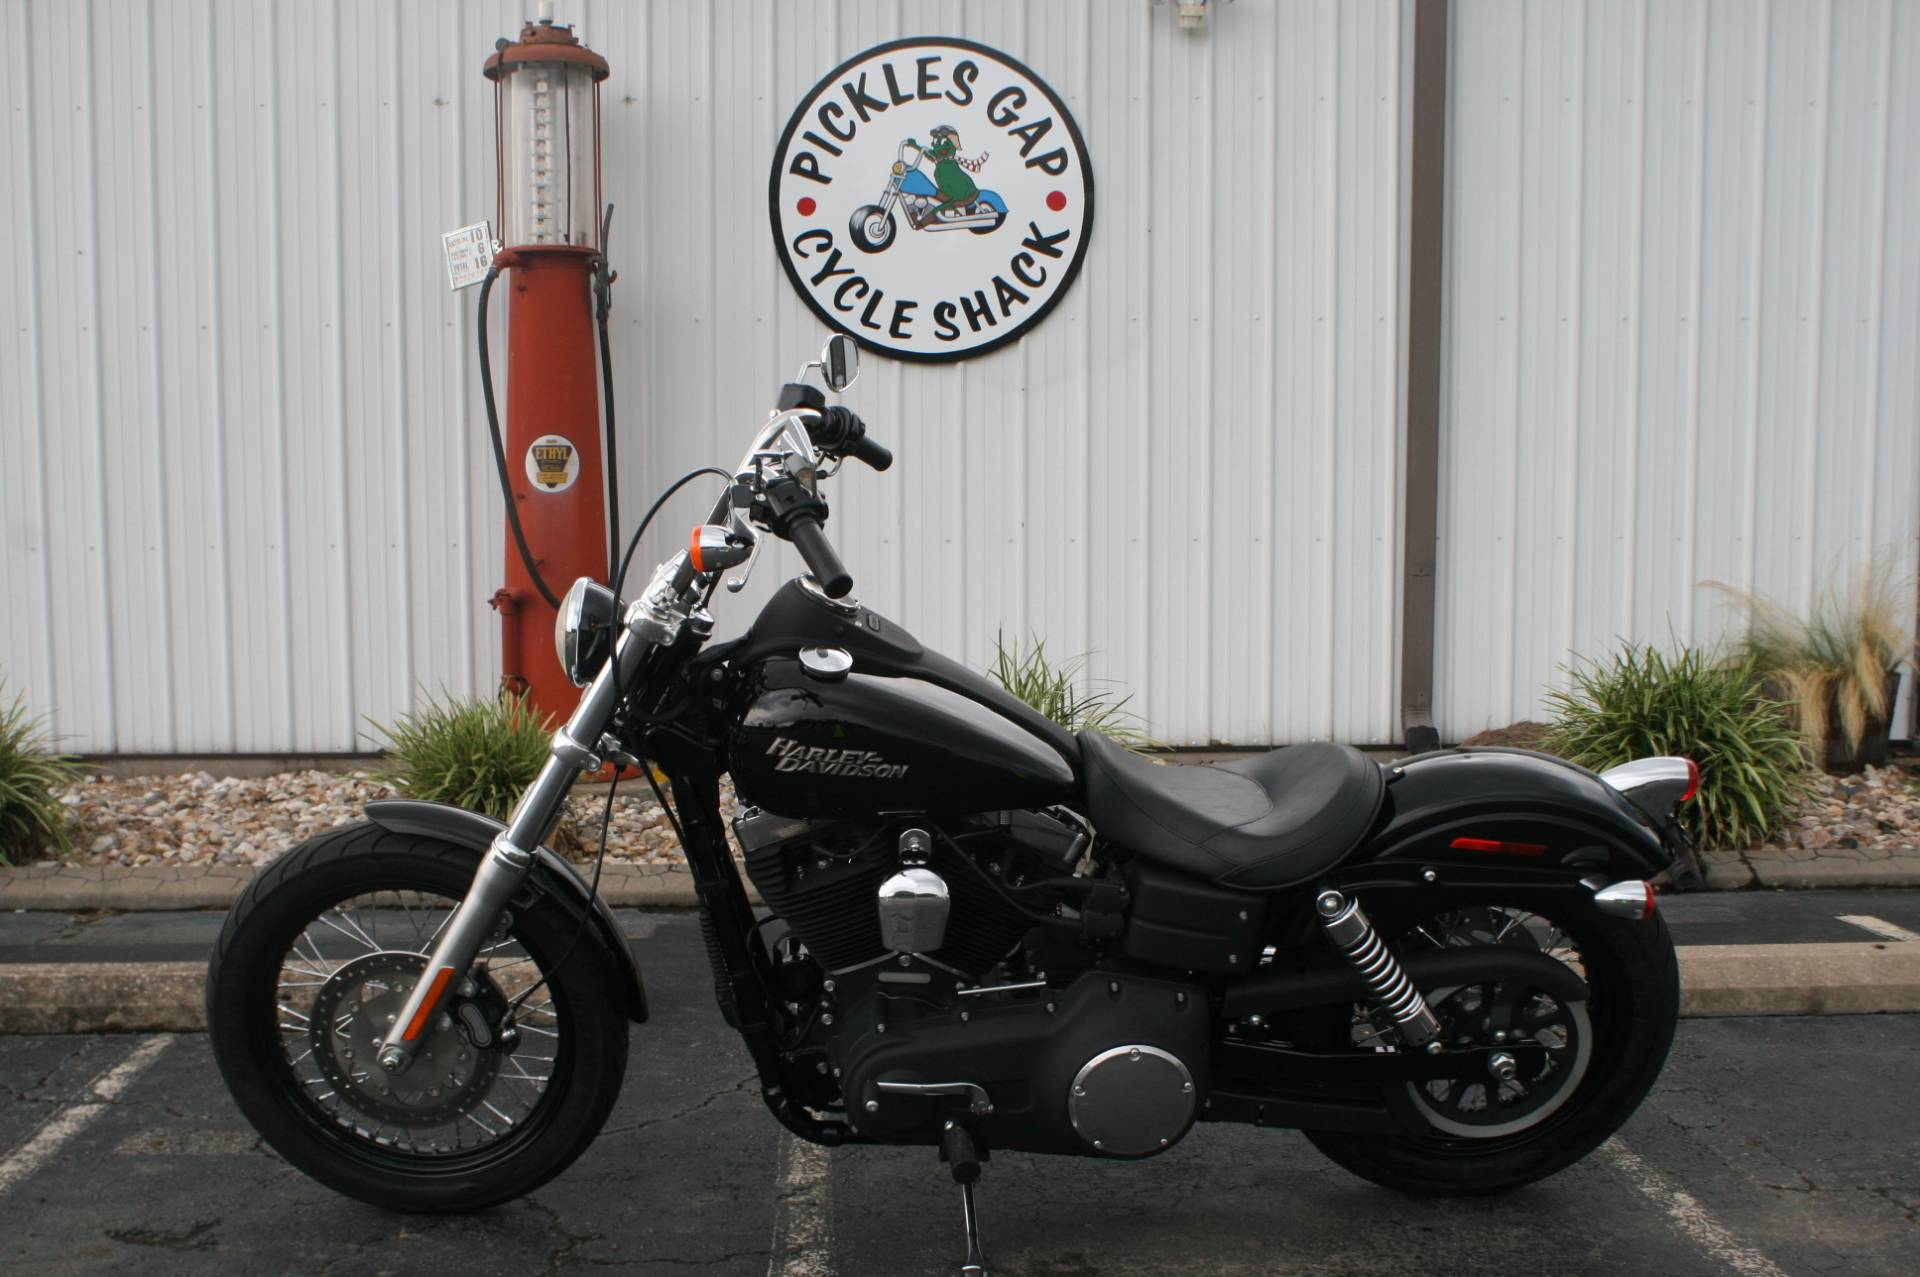 2011 Harley-Davidson FXDB STREET BOB in Greenbrier, Arkansas - Photo 1